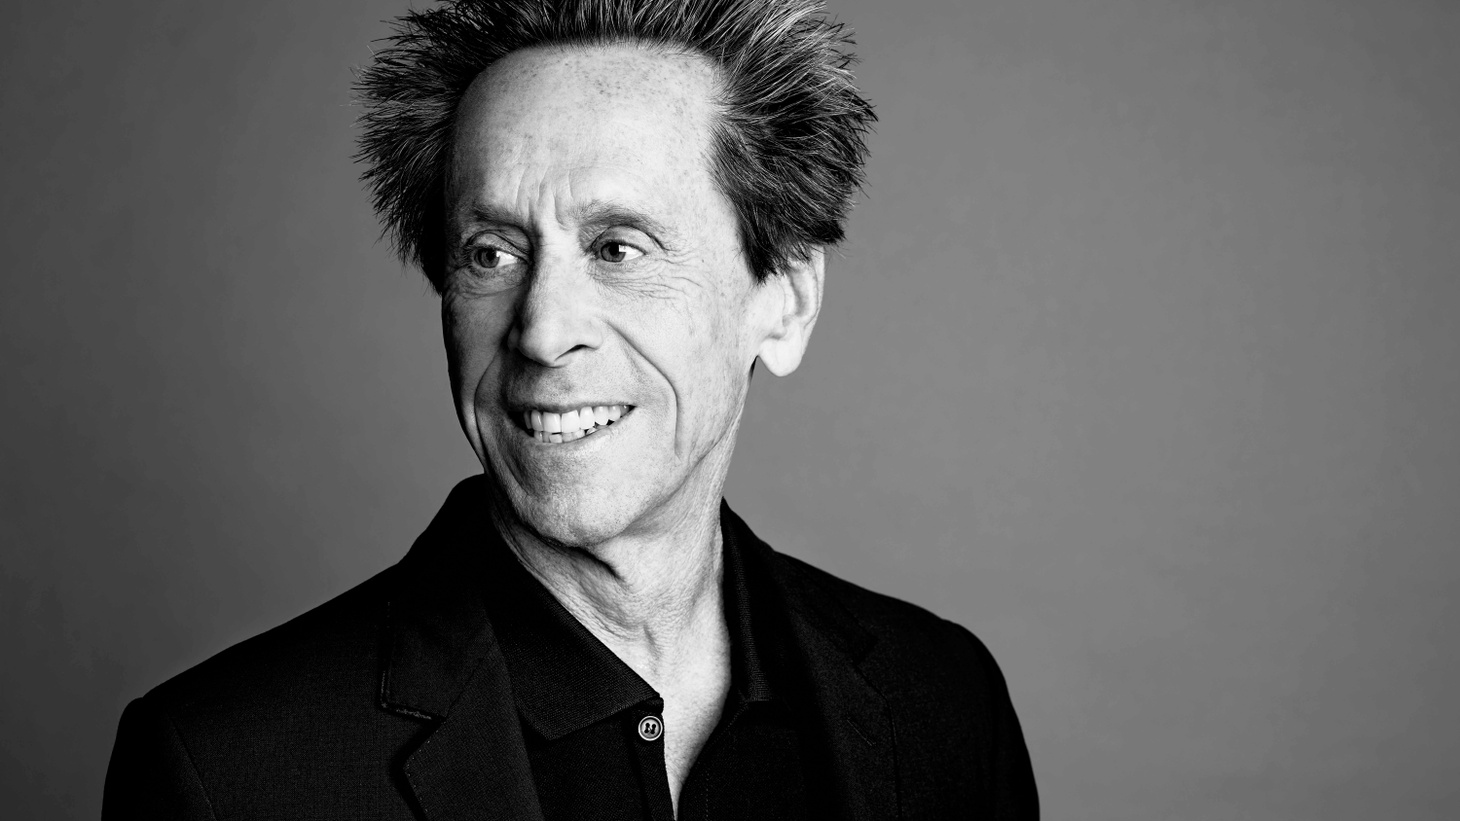 Brian Grazer has produced some of the most memorable movies of the last 30 years. He tells us how he's adapting to a rapidly changing film world and shares stories from his new book, A Curious Mind.